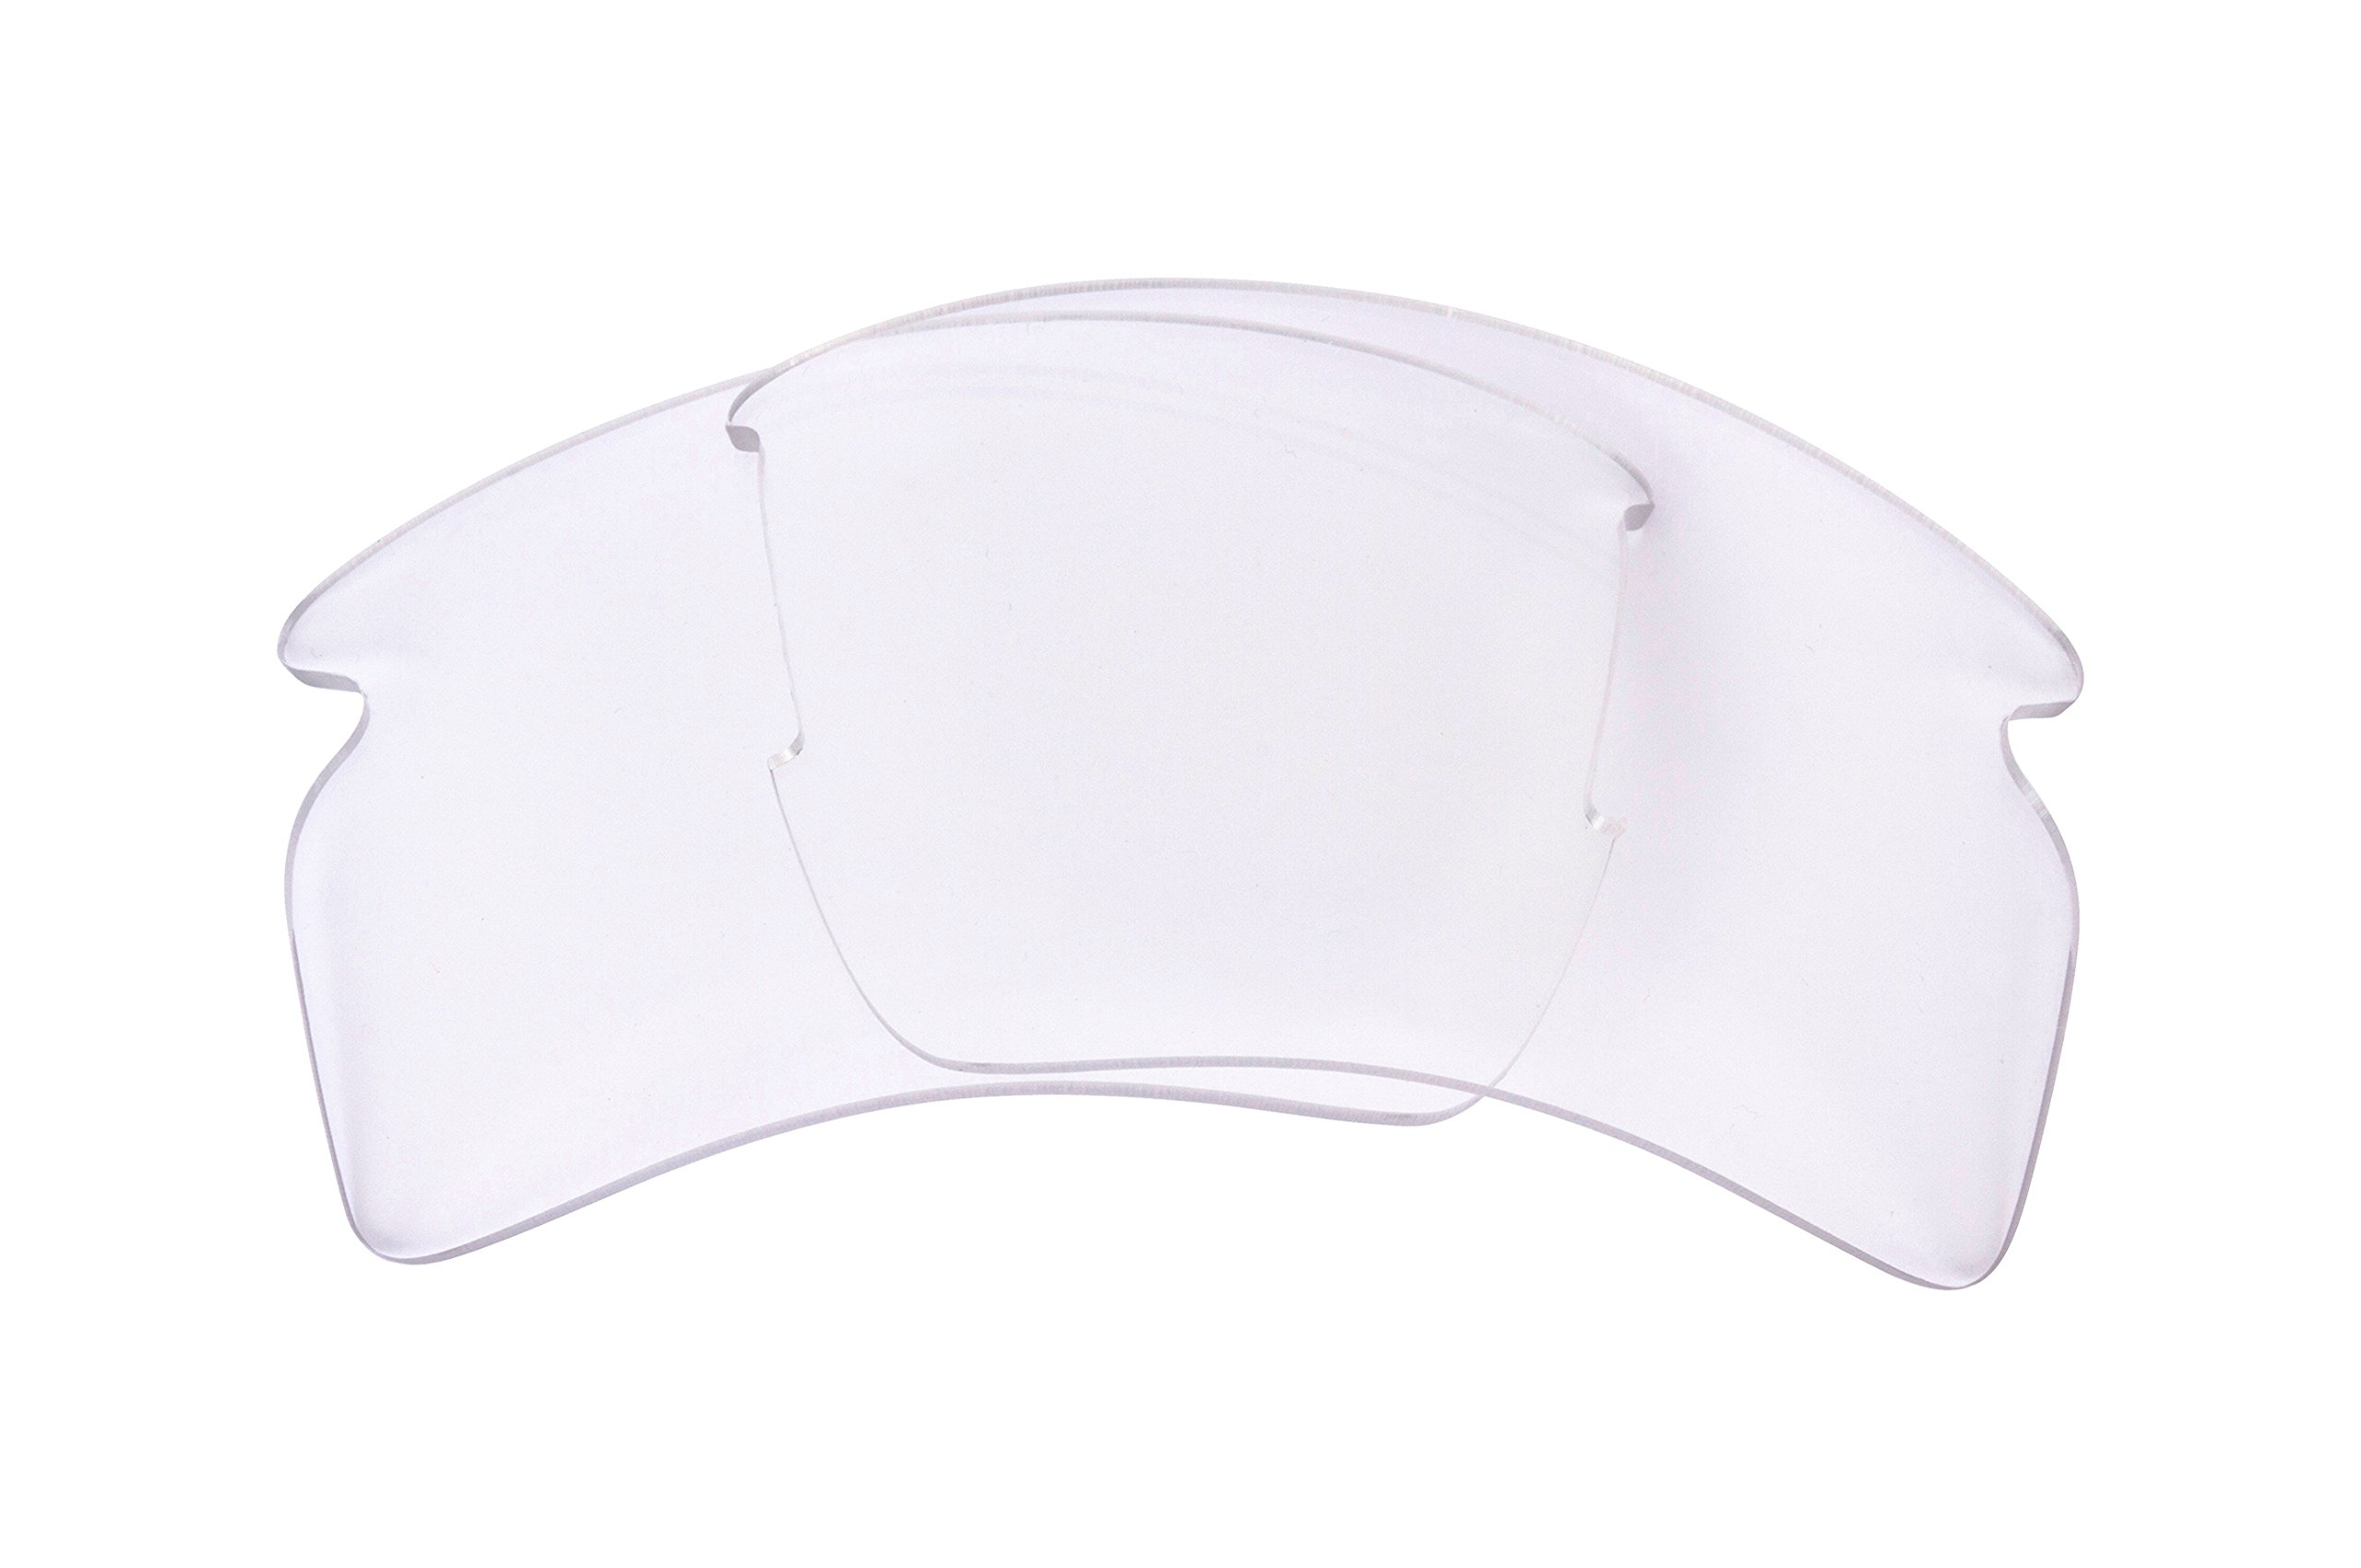 Seek Optics Replacement Lenses for Oakley FLAK 2.0 XL, Crystal Clear Non-polarized